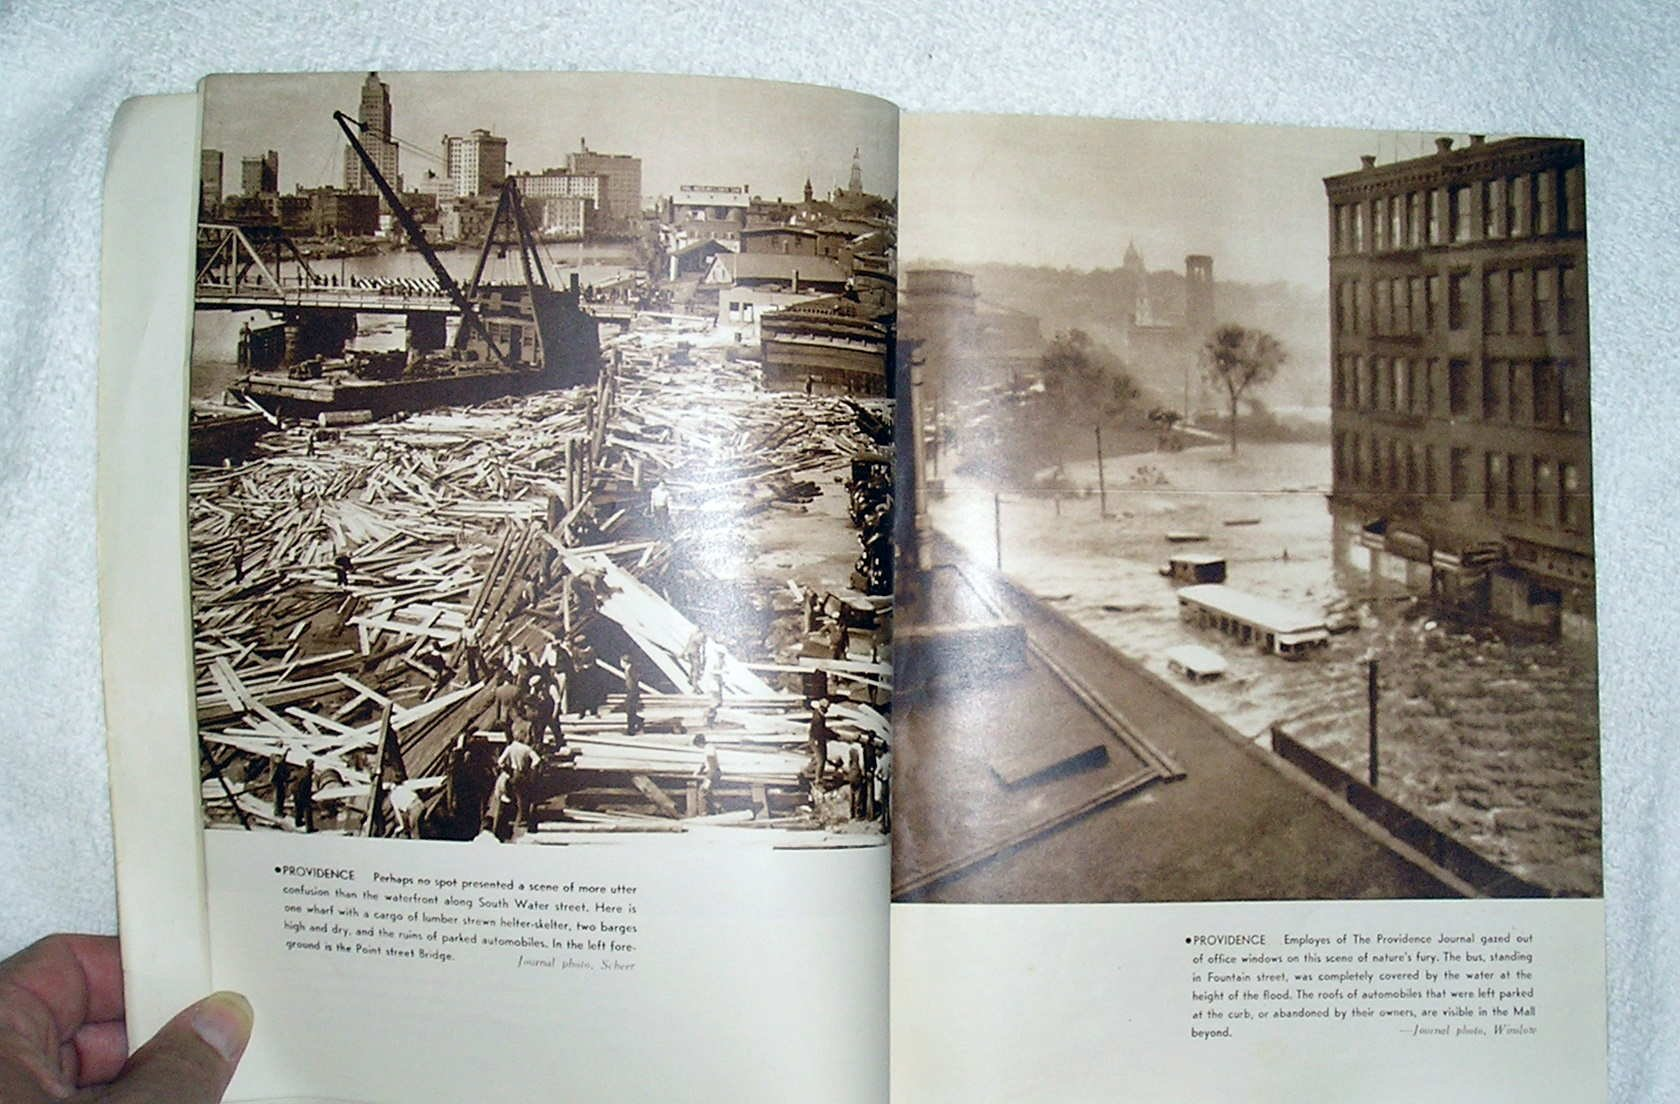 The Great Hurricane and Tidal Wave, Rhode Island: September